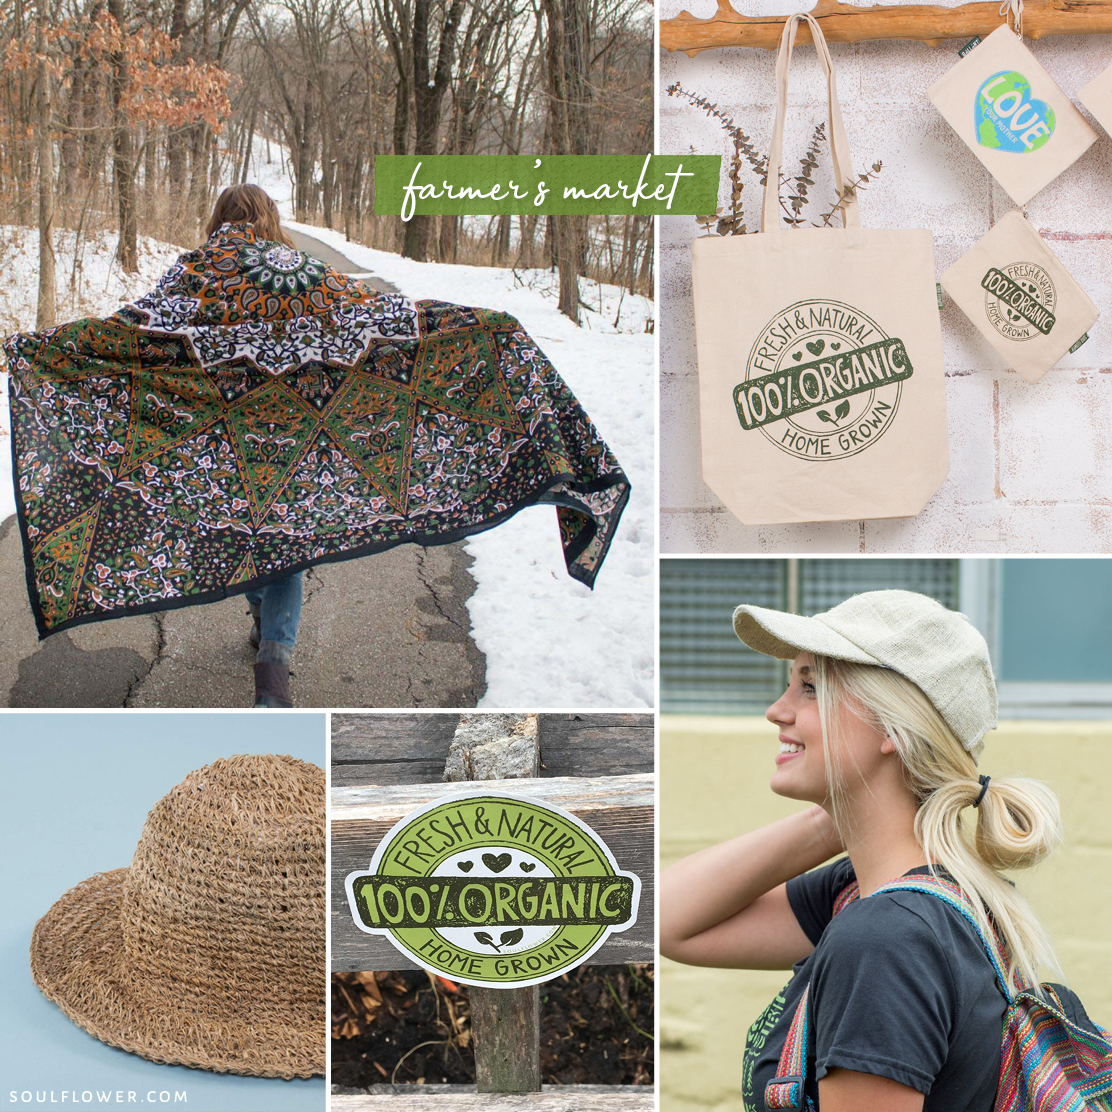 vegan gifts farmers market earth friendly - Vegan Gift Ideas - Vegan Holiday Gifts